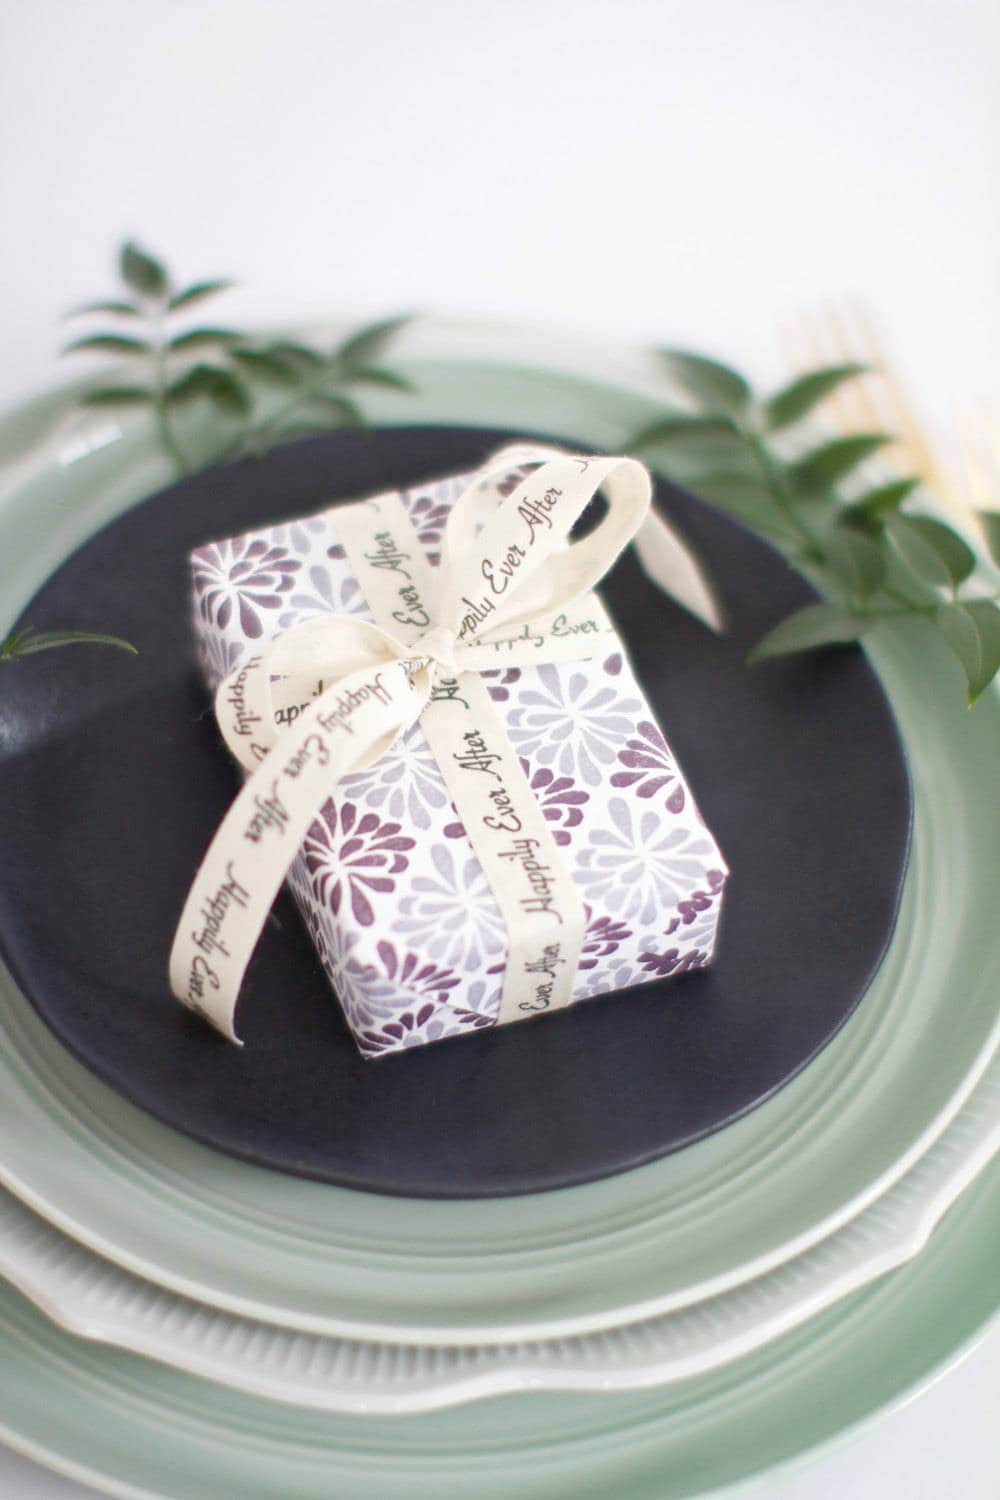 Handmade Soap Personalized Wedding Favor Bridal Shower Gifts